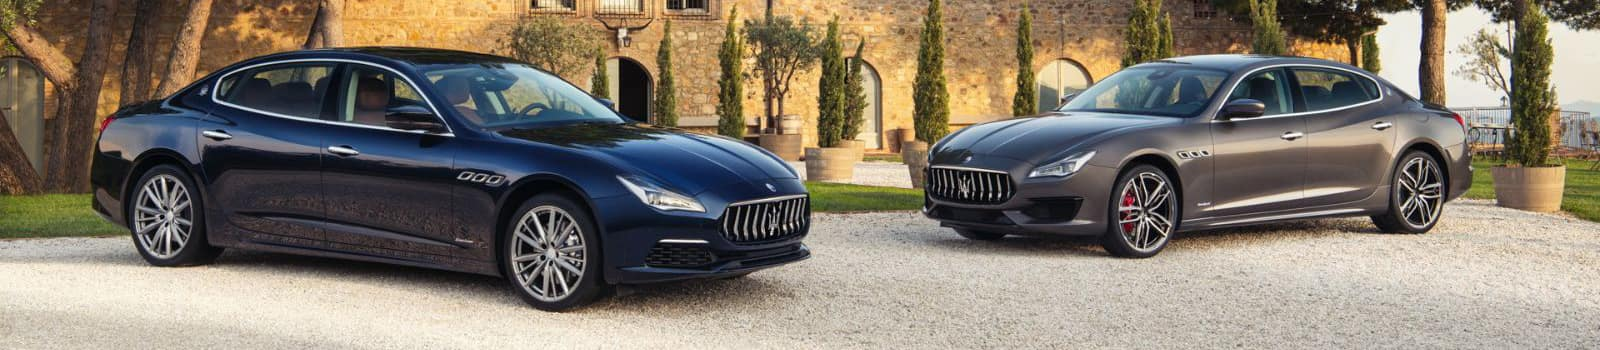 Two Maserati 2019 cars parked outside